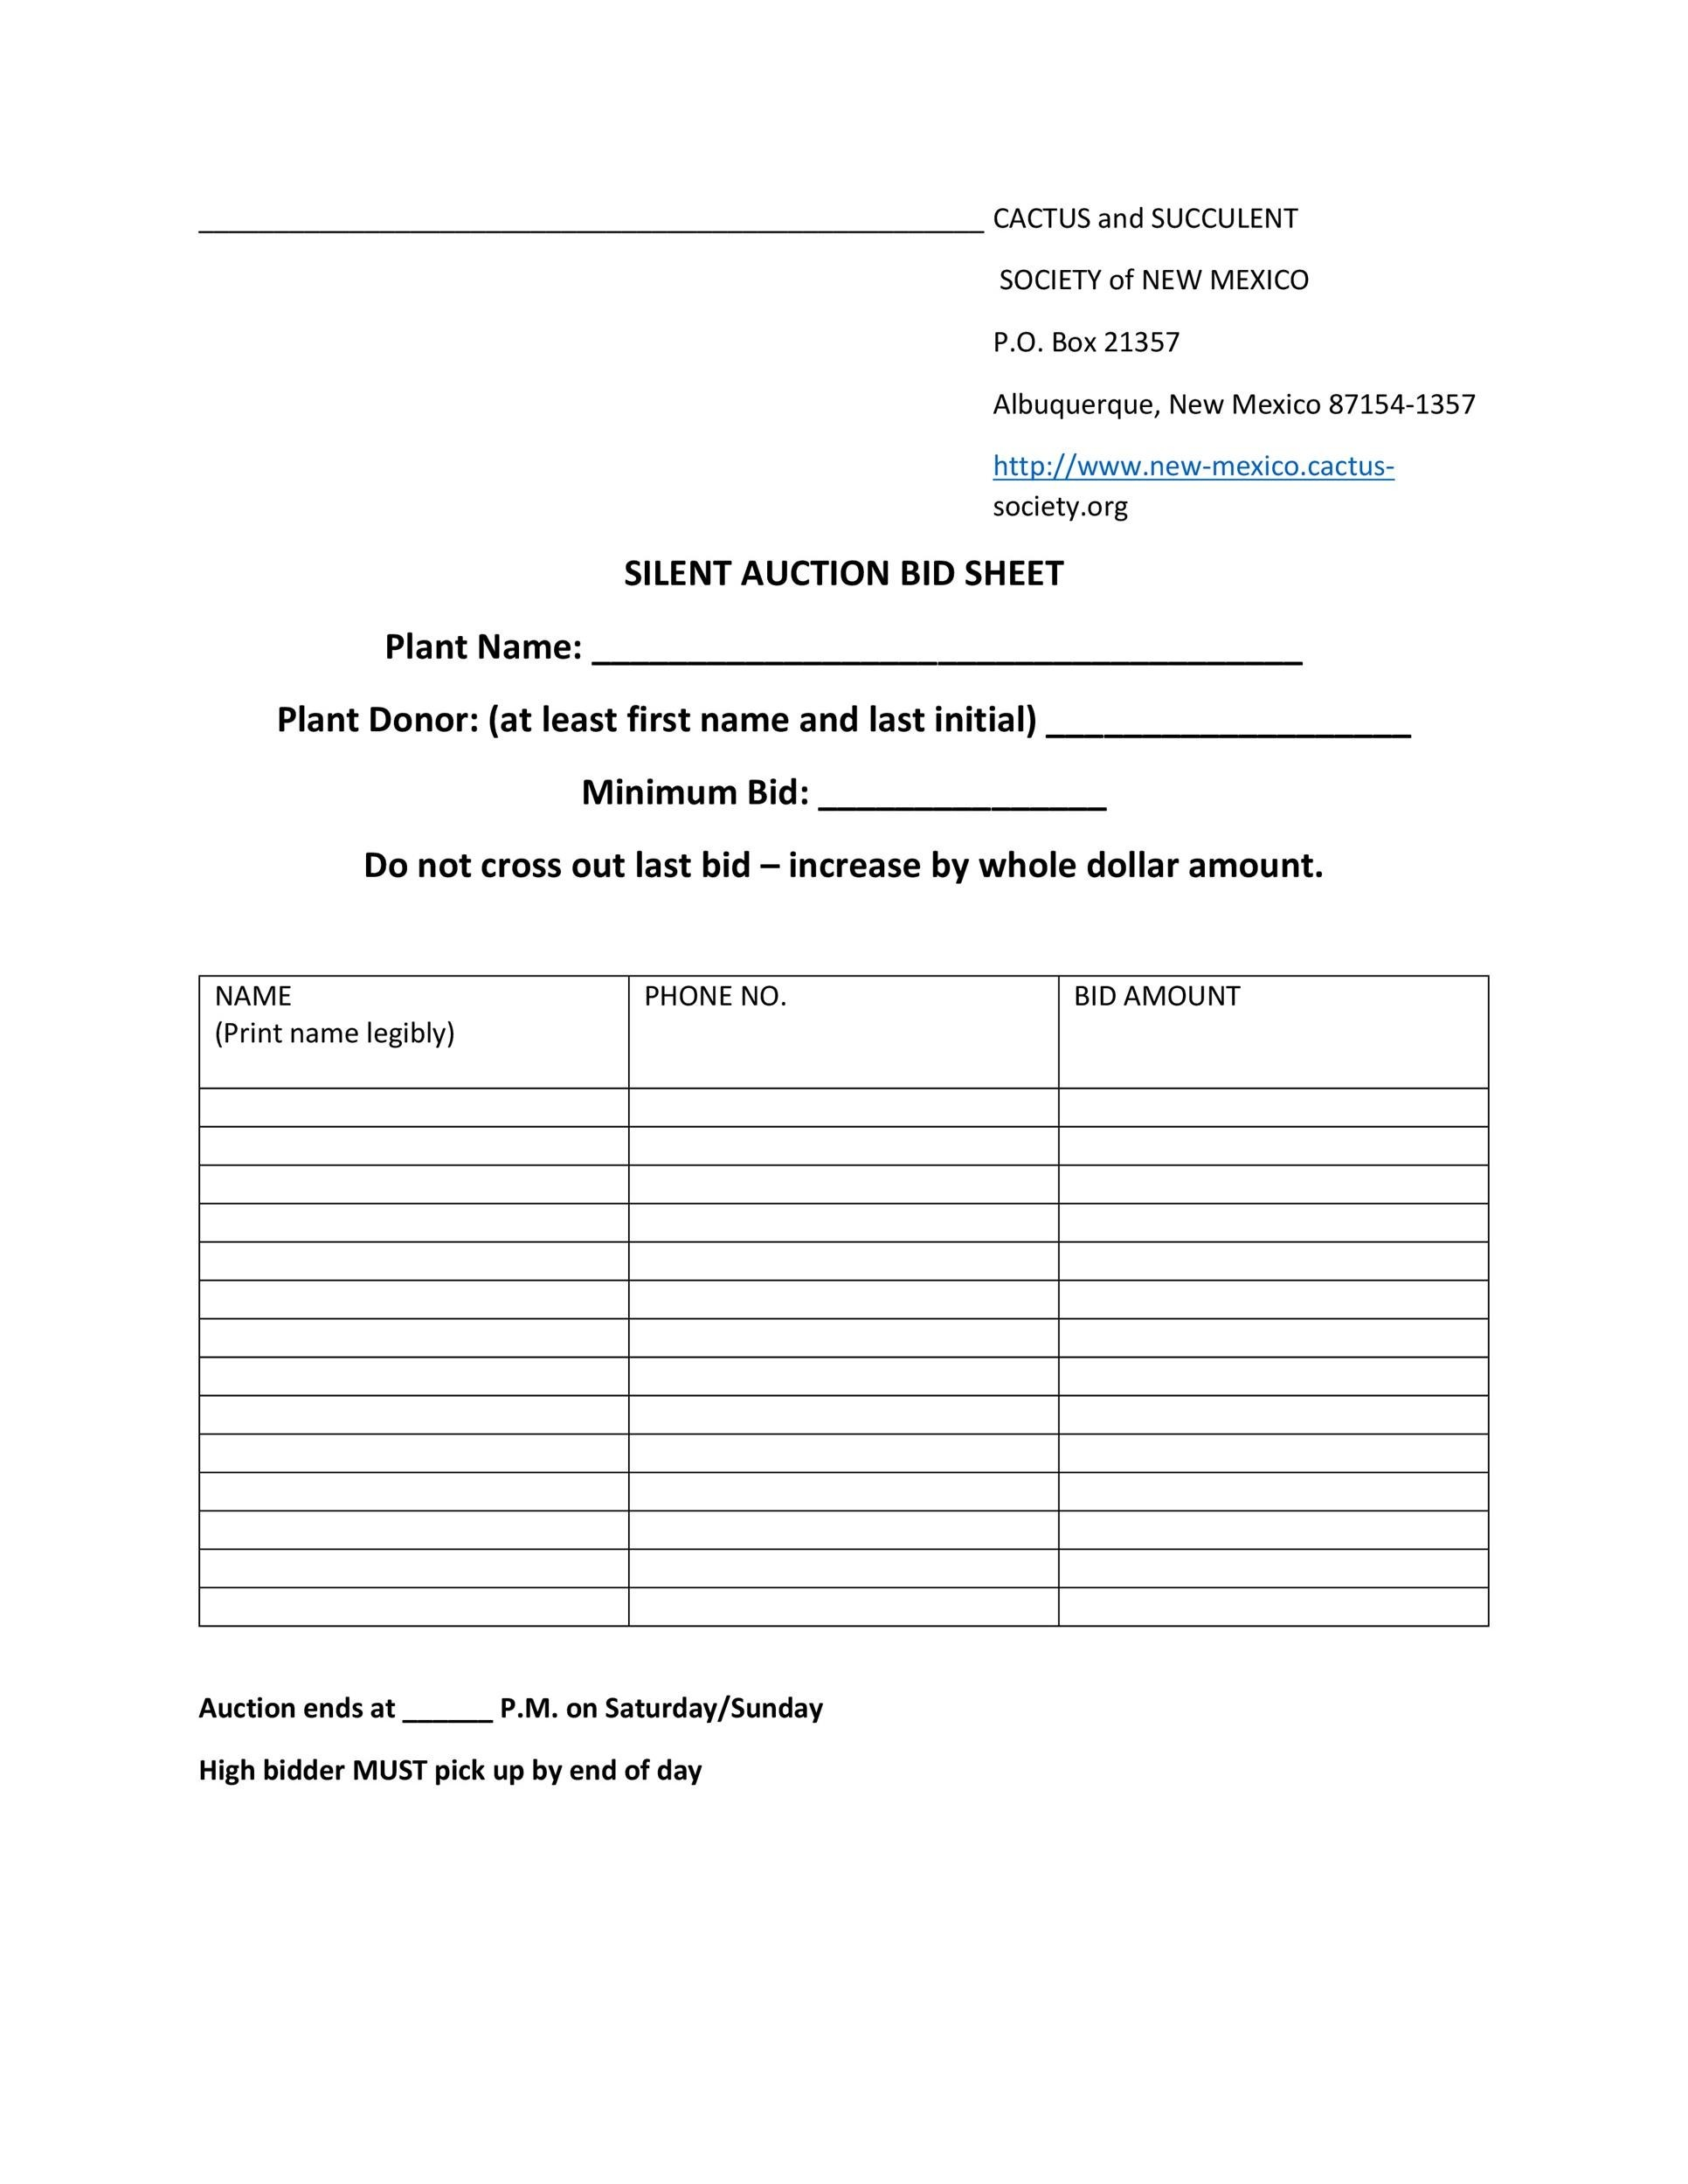 Free Silent Auction Bid Sheet 29